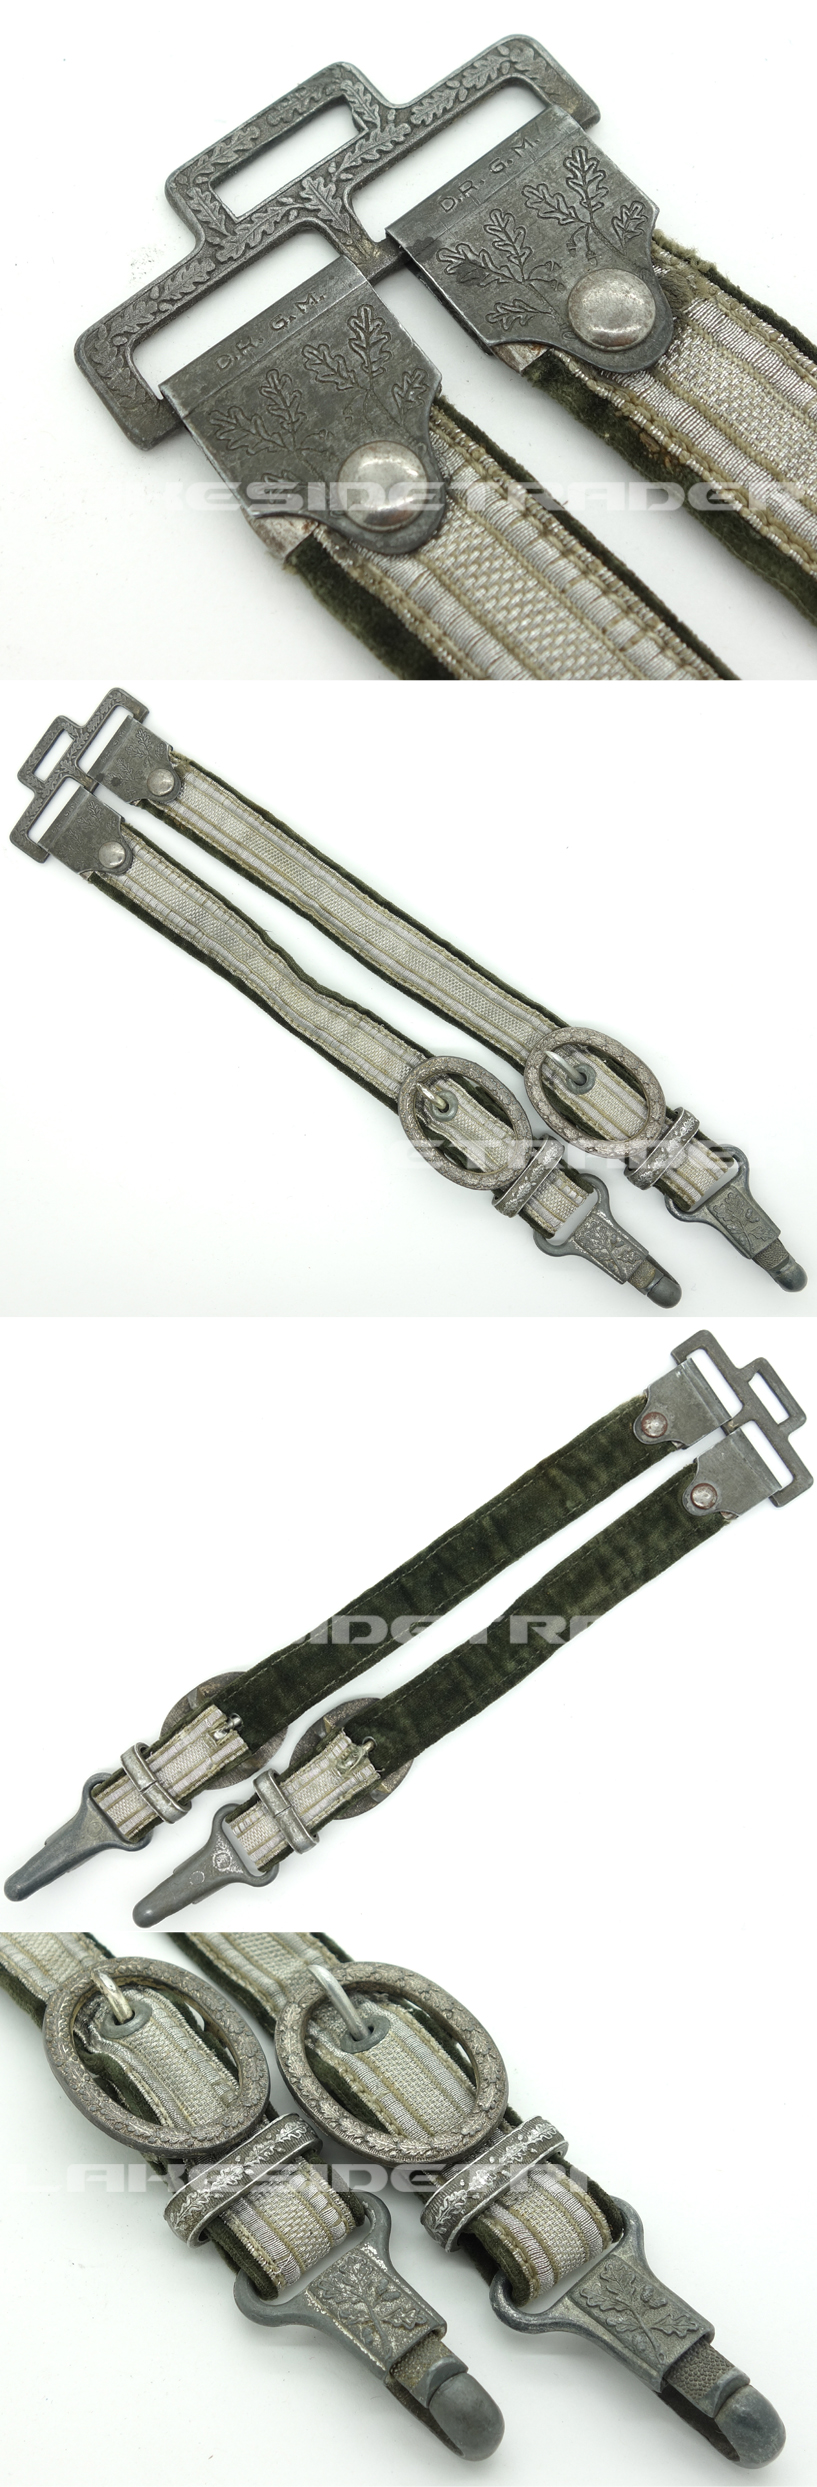 Super Deluxe Army Dagger Hangers